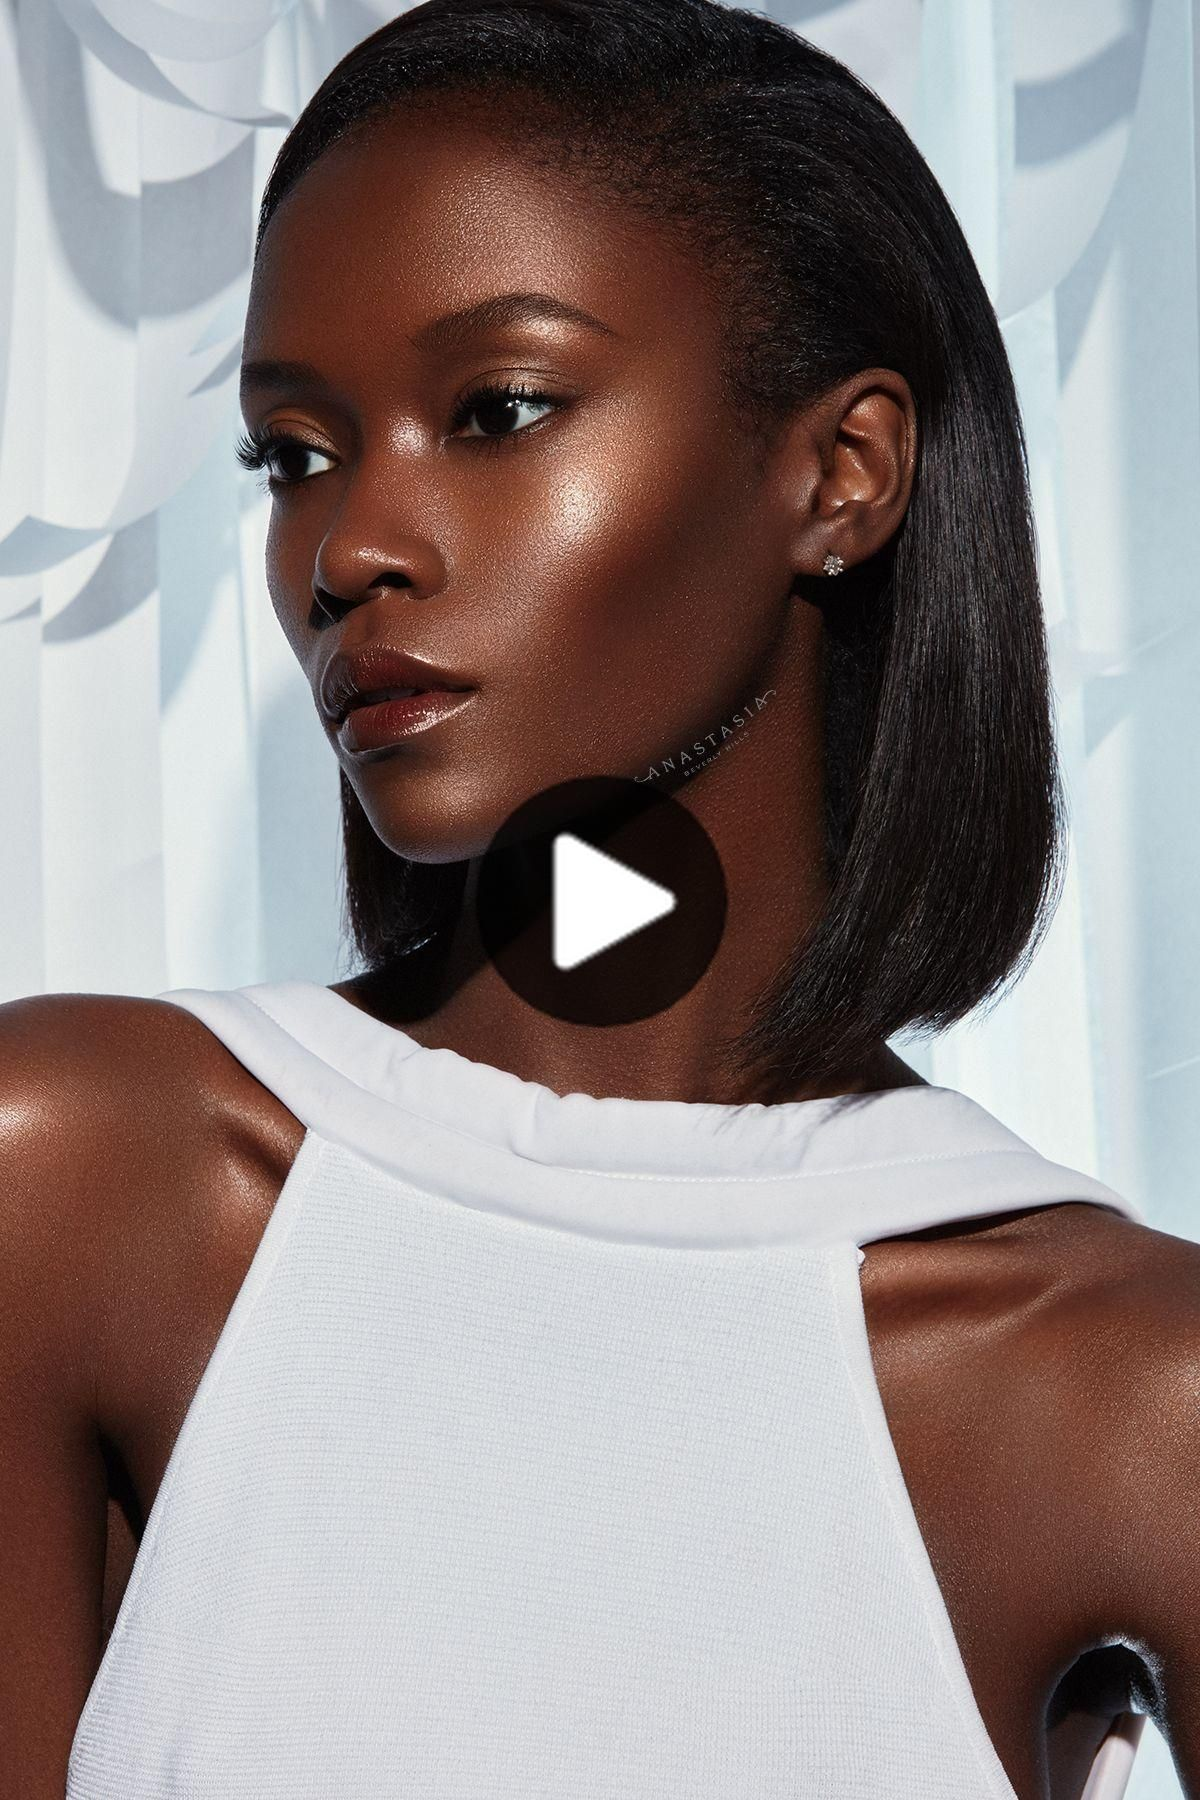 Anastasia Liquid Glow Peach Fizz in 2020 Dark skin